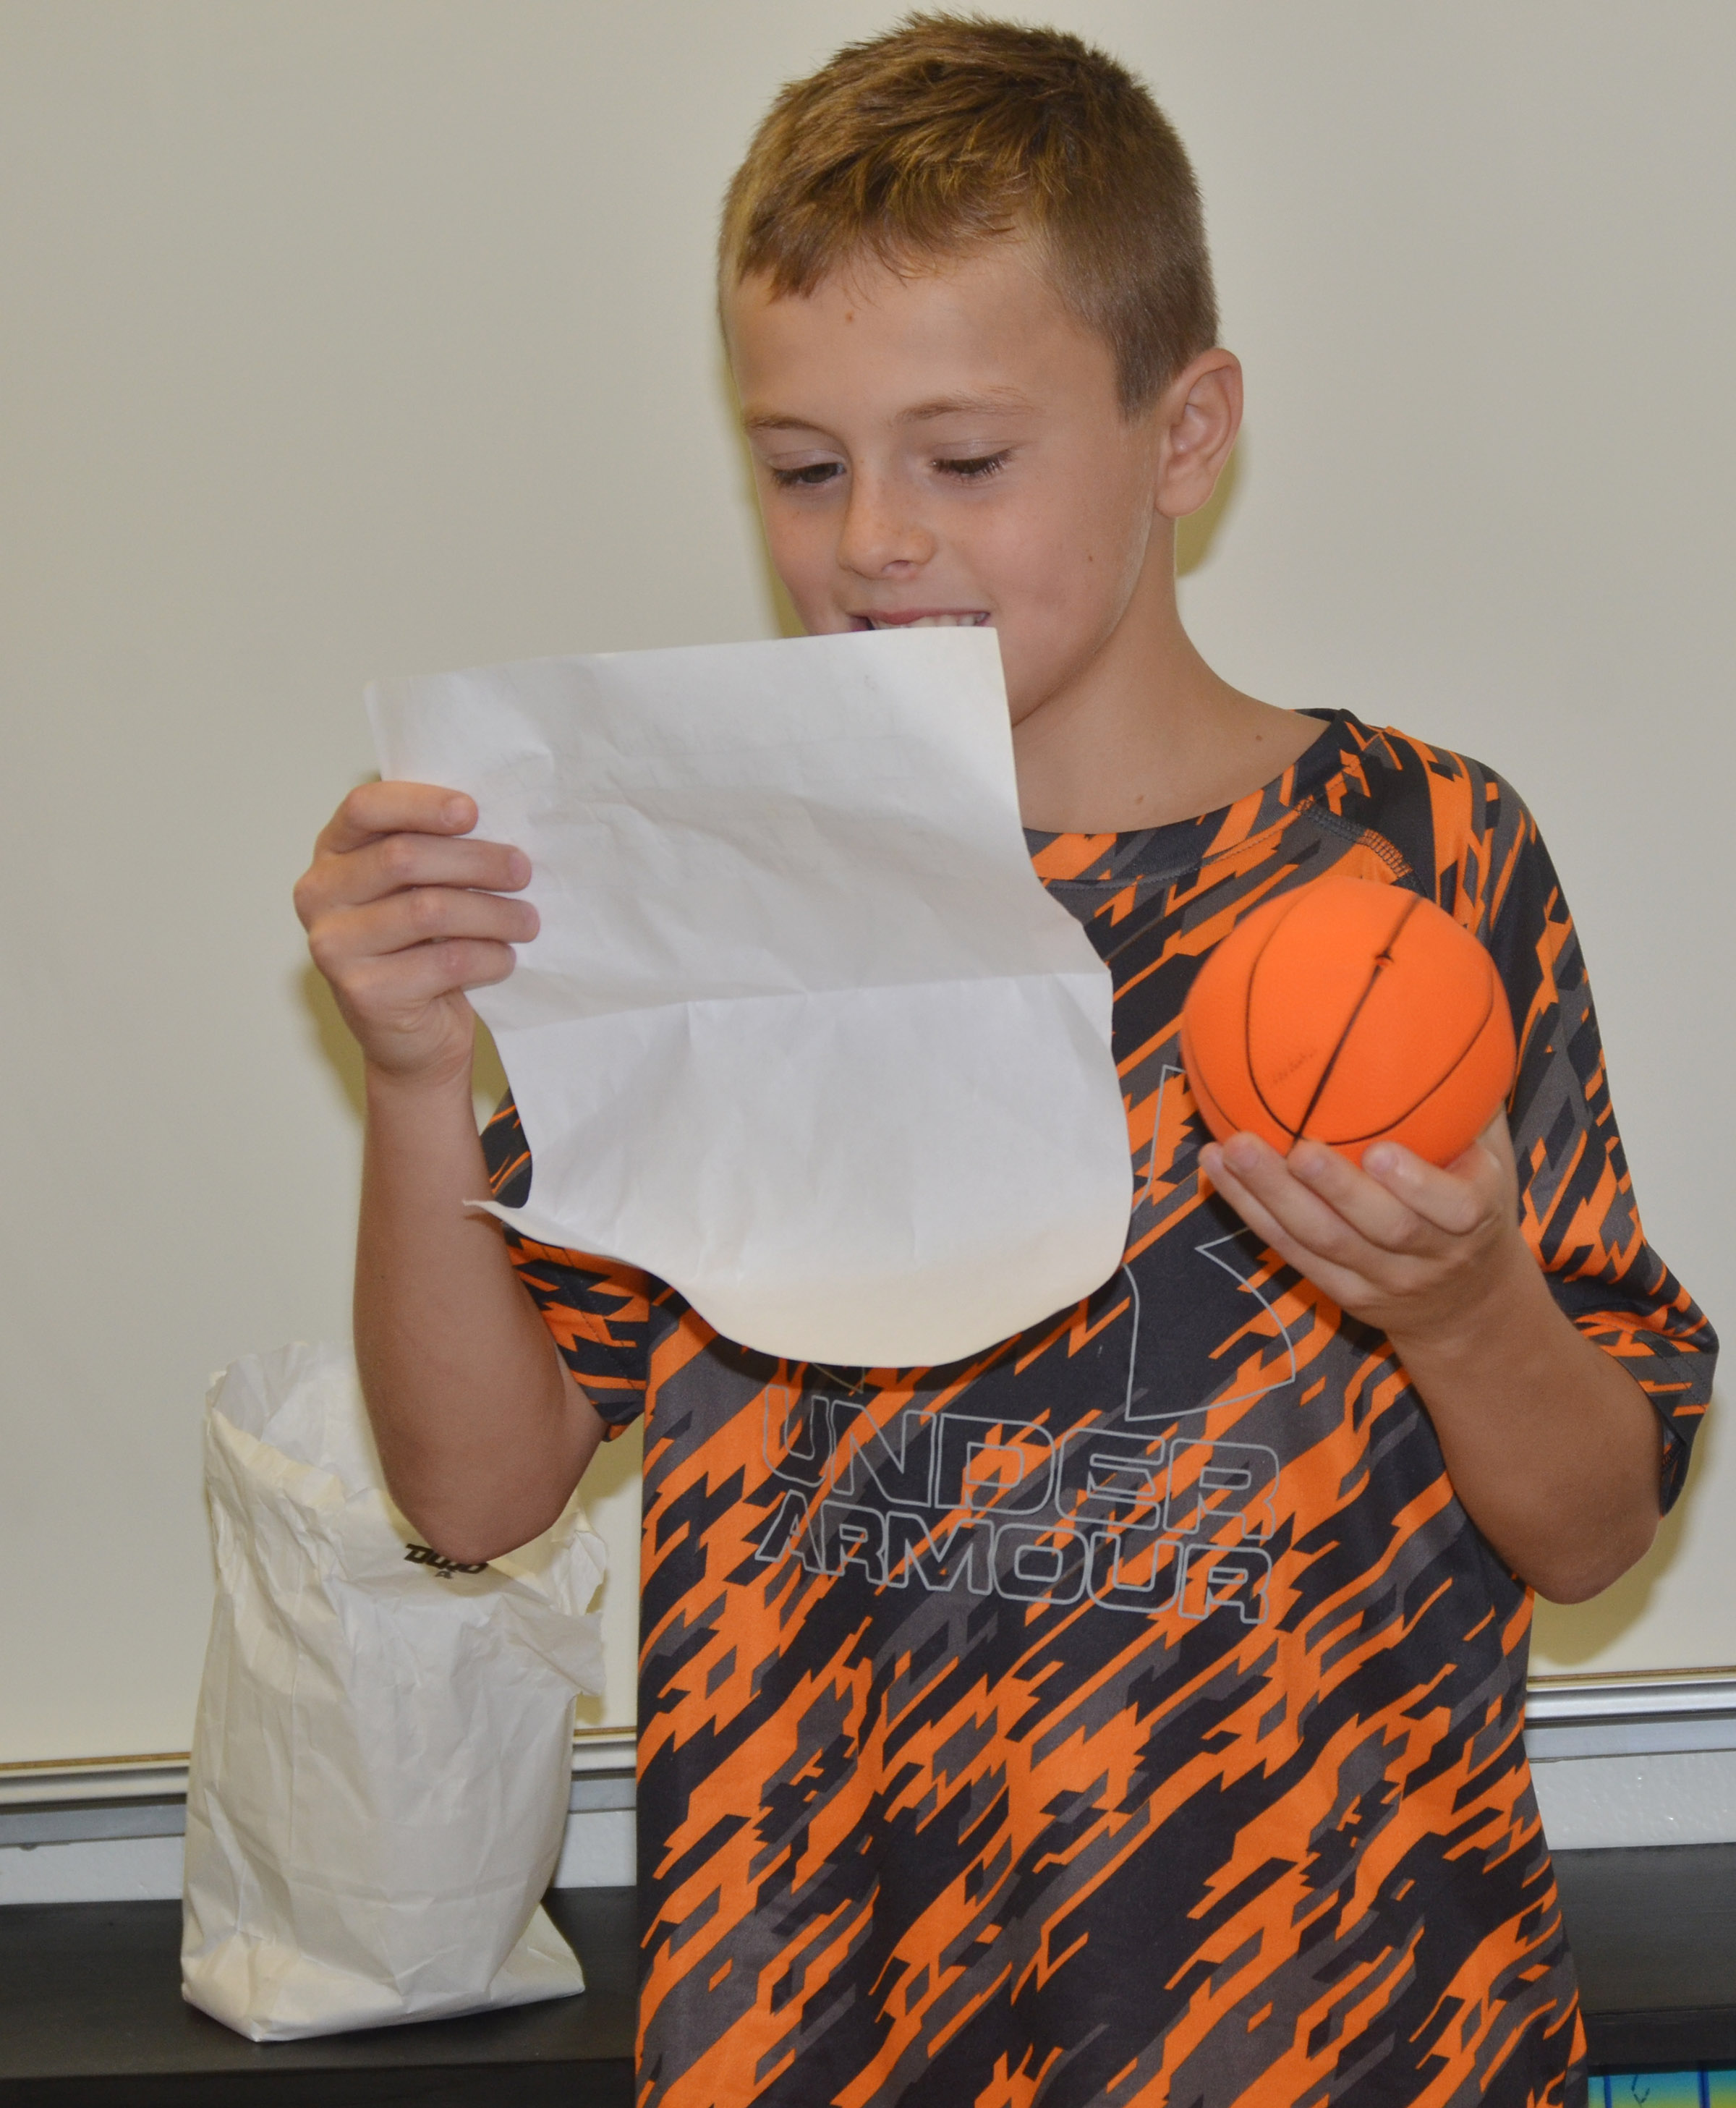 CES fourth-grader Keaton Hord says he loves basketball.